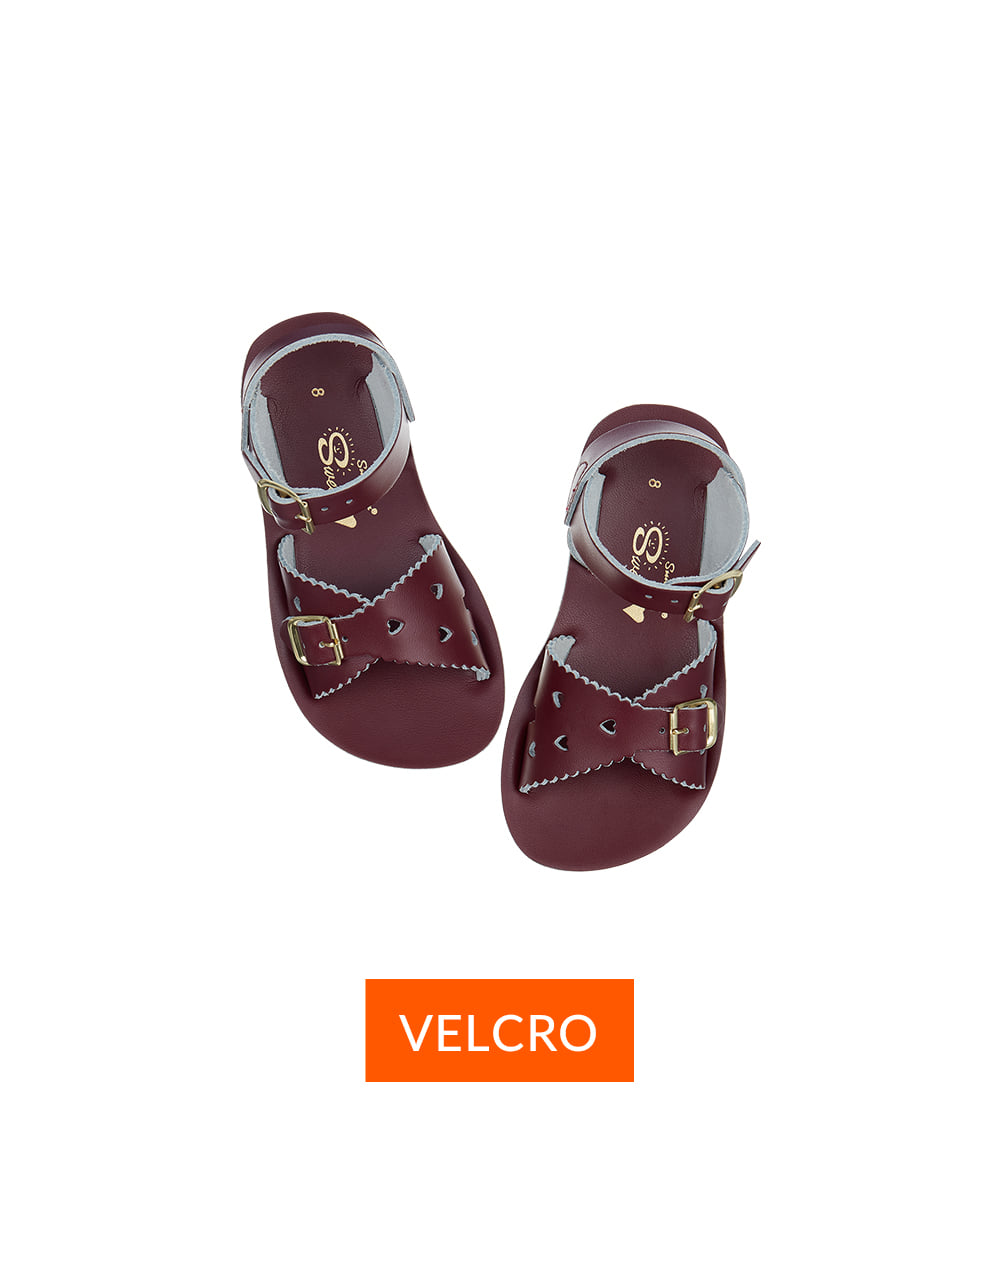 SALT-WATER SANDAL  CHILD VELCRO  SWEETHEART  Claret